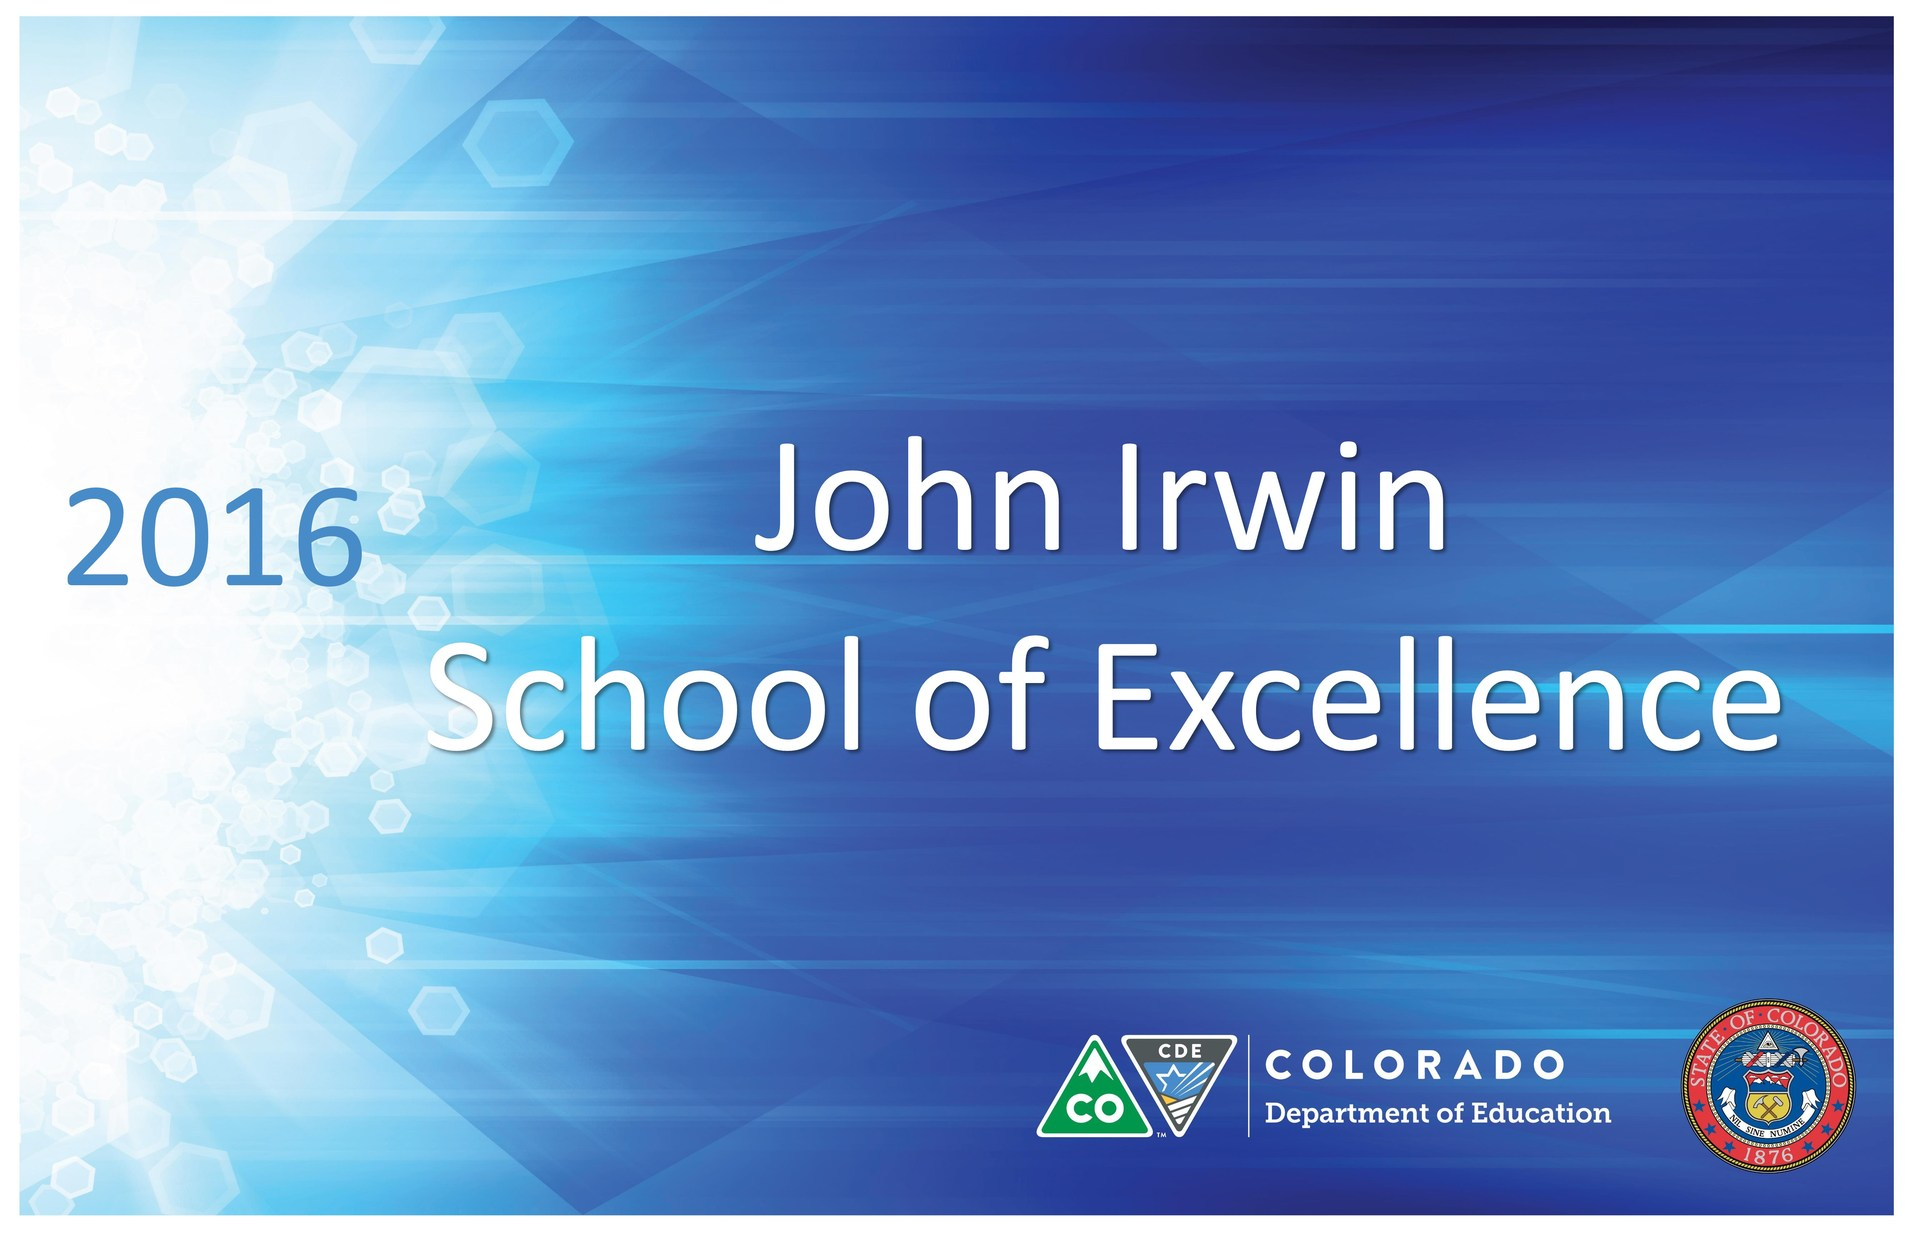 John Irwin School of Excellence 2016